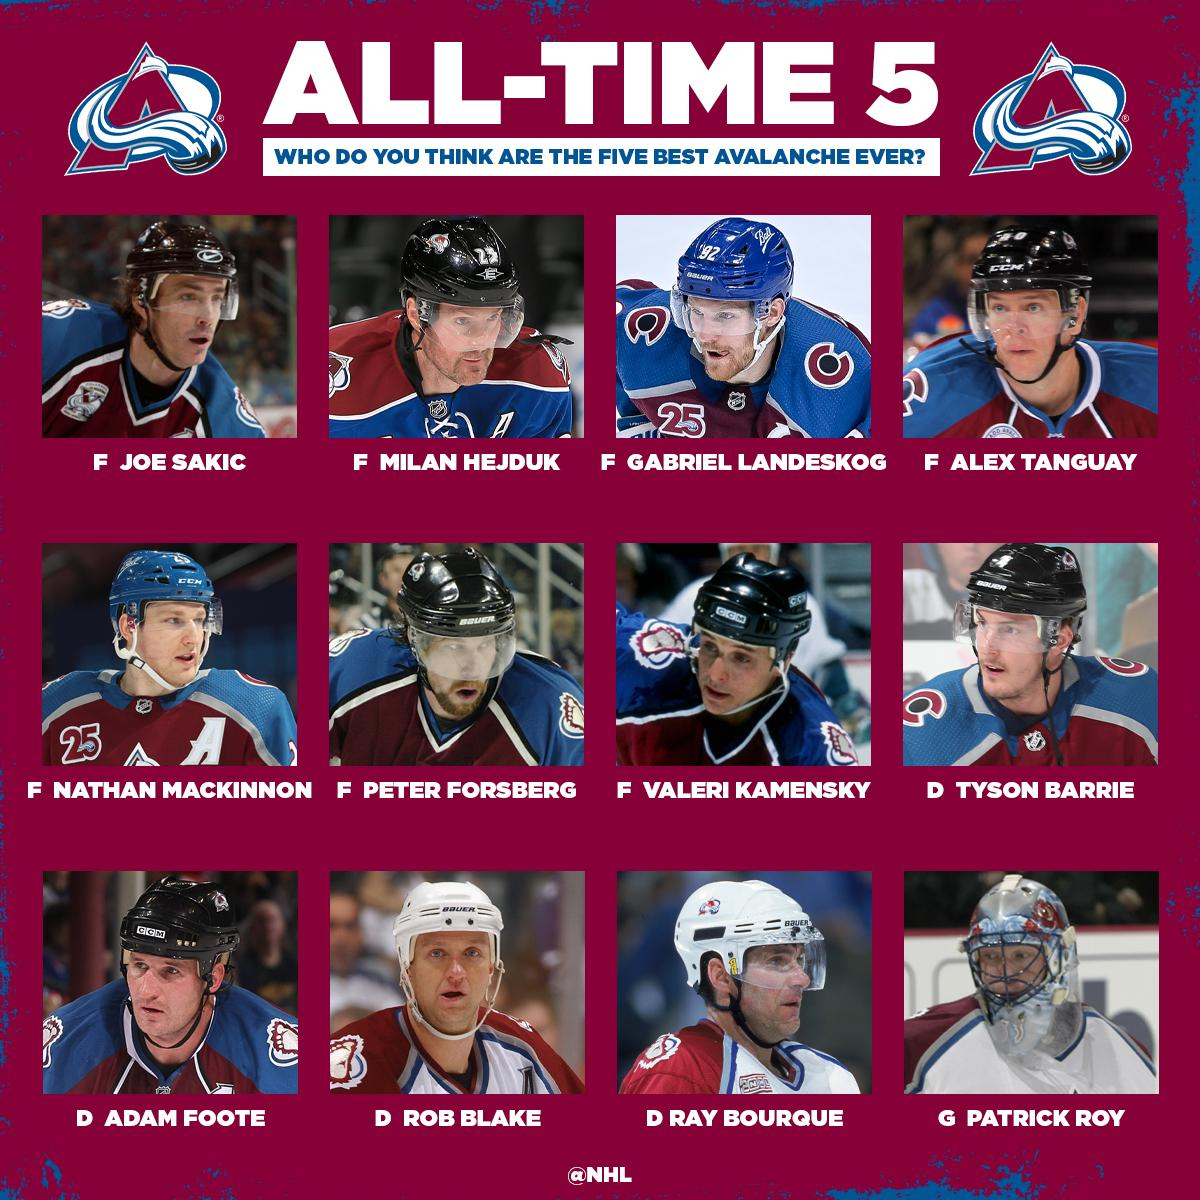 We'll help you out with the first pick: Joe Sakic  Who's making the rest of the @Avalanche roster?